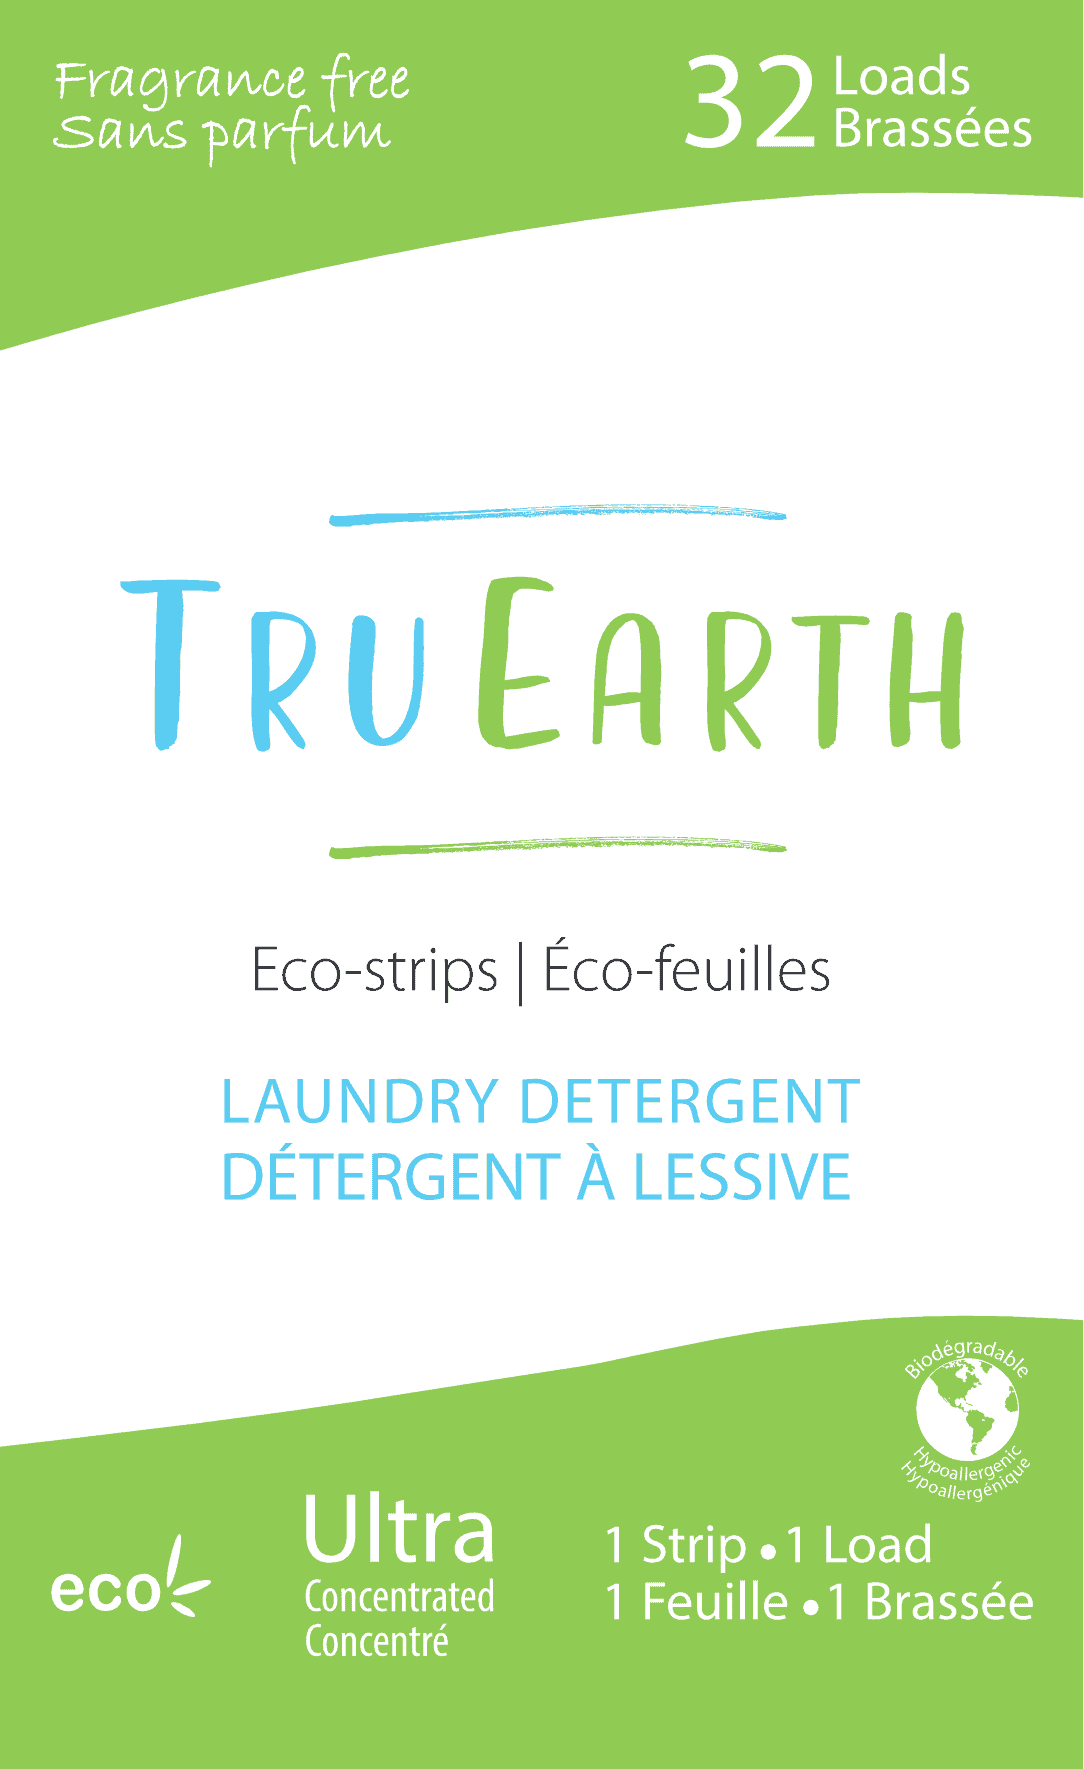 Tru Earth Fragrance-Free